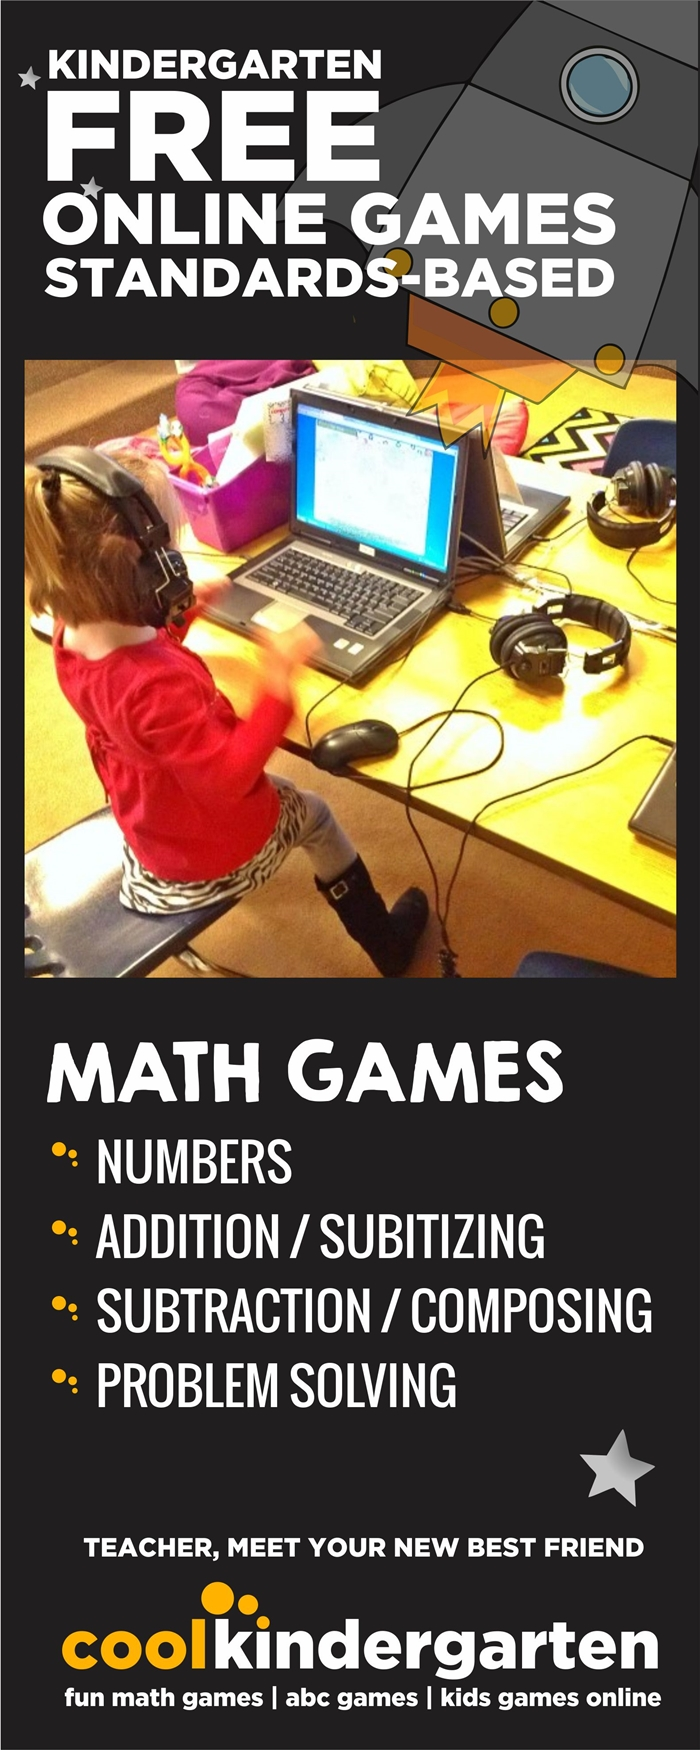 Cool math games for kindergarten - free online